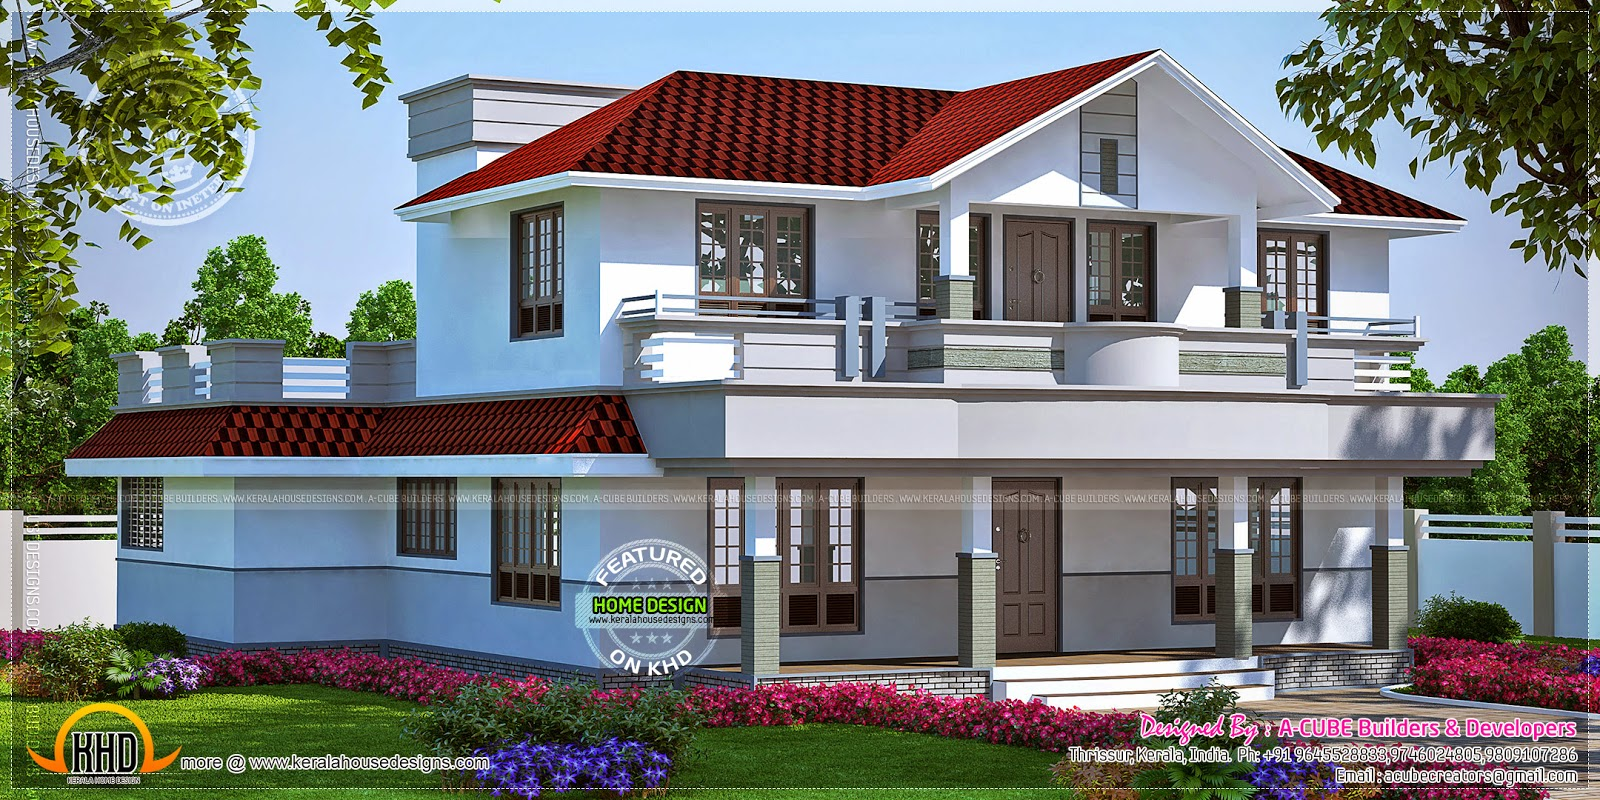 Beautiful home in kerala in 298 square yards kerala home design and floor plans - Kerala beautiful house ...